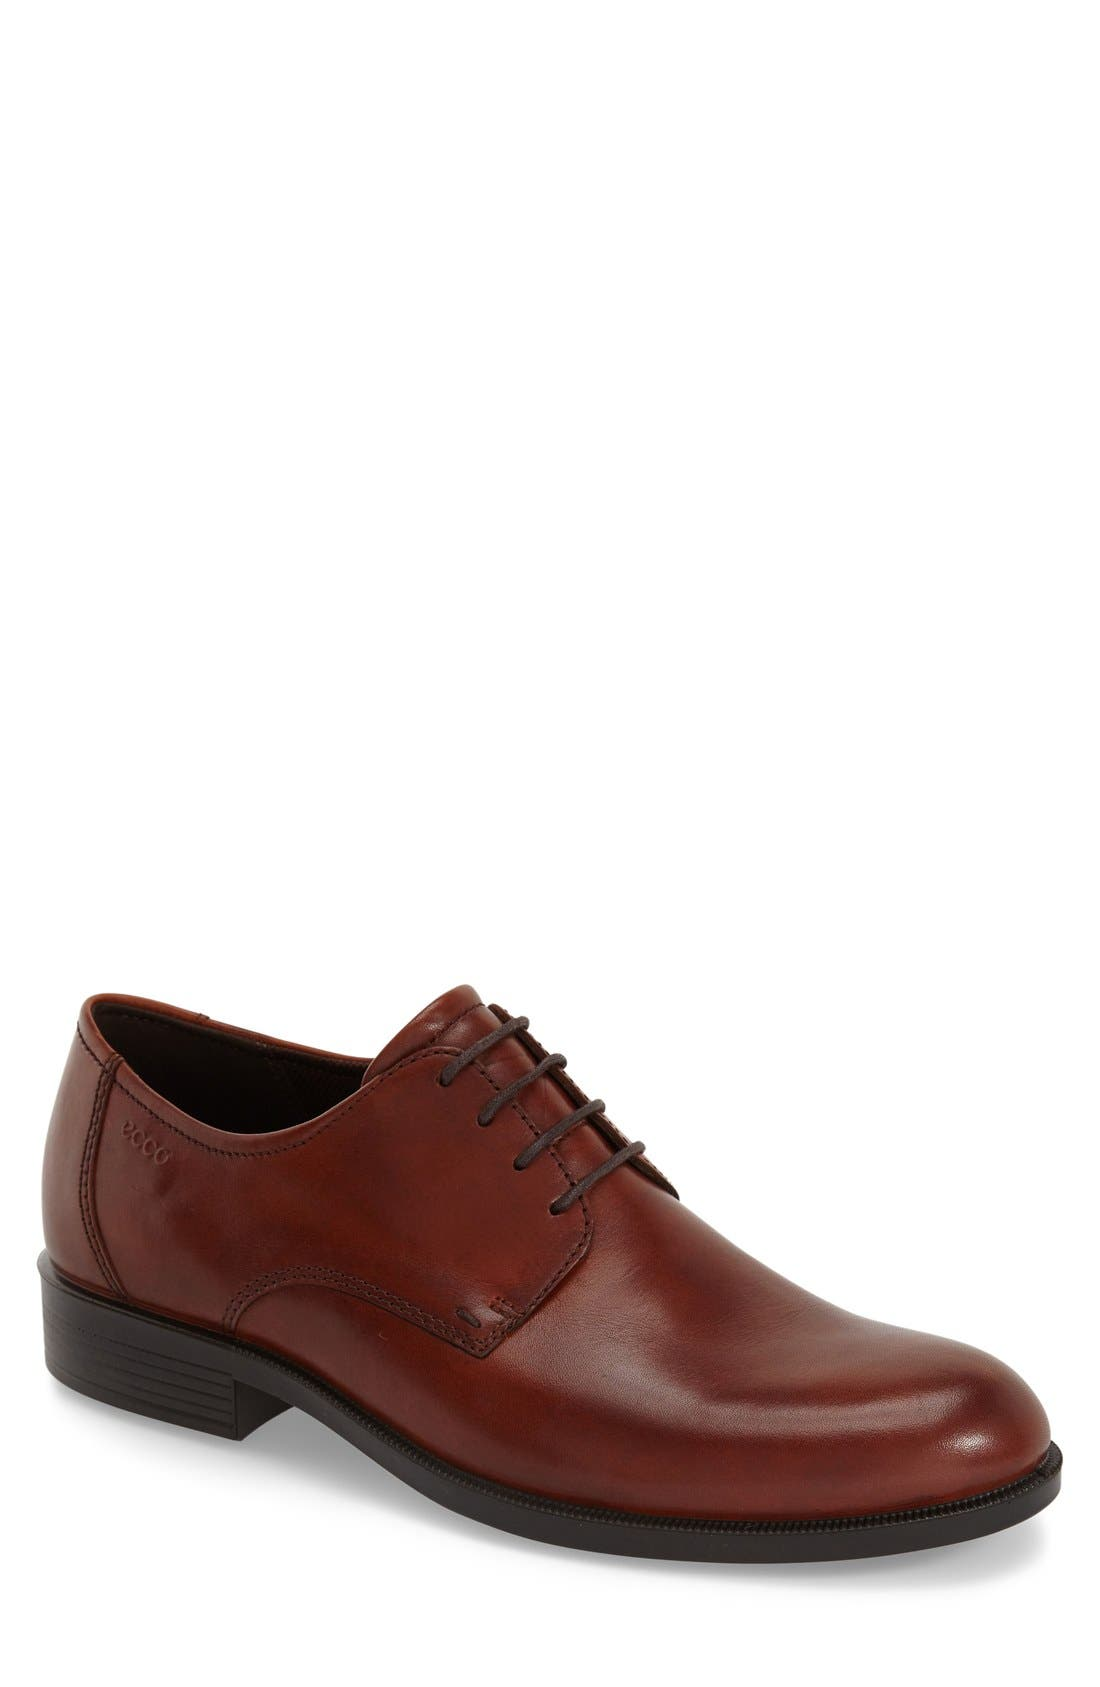 ECCO 'Harold' Plain Toe Derby